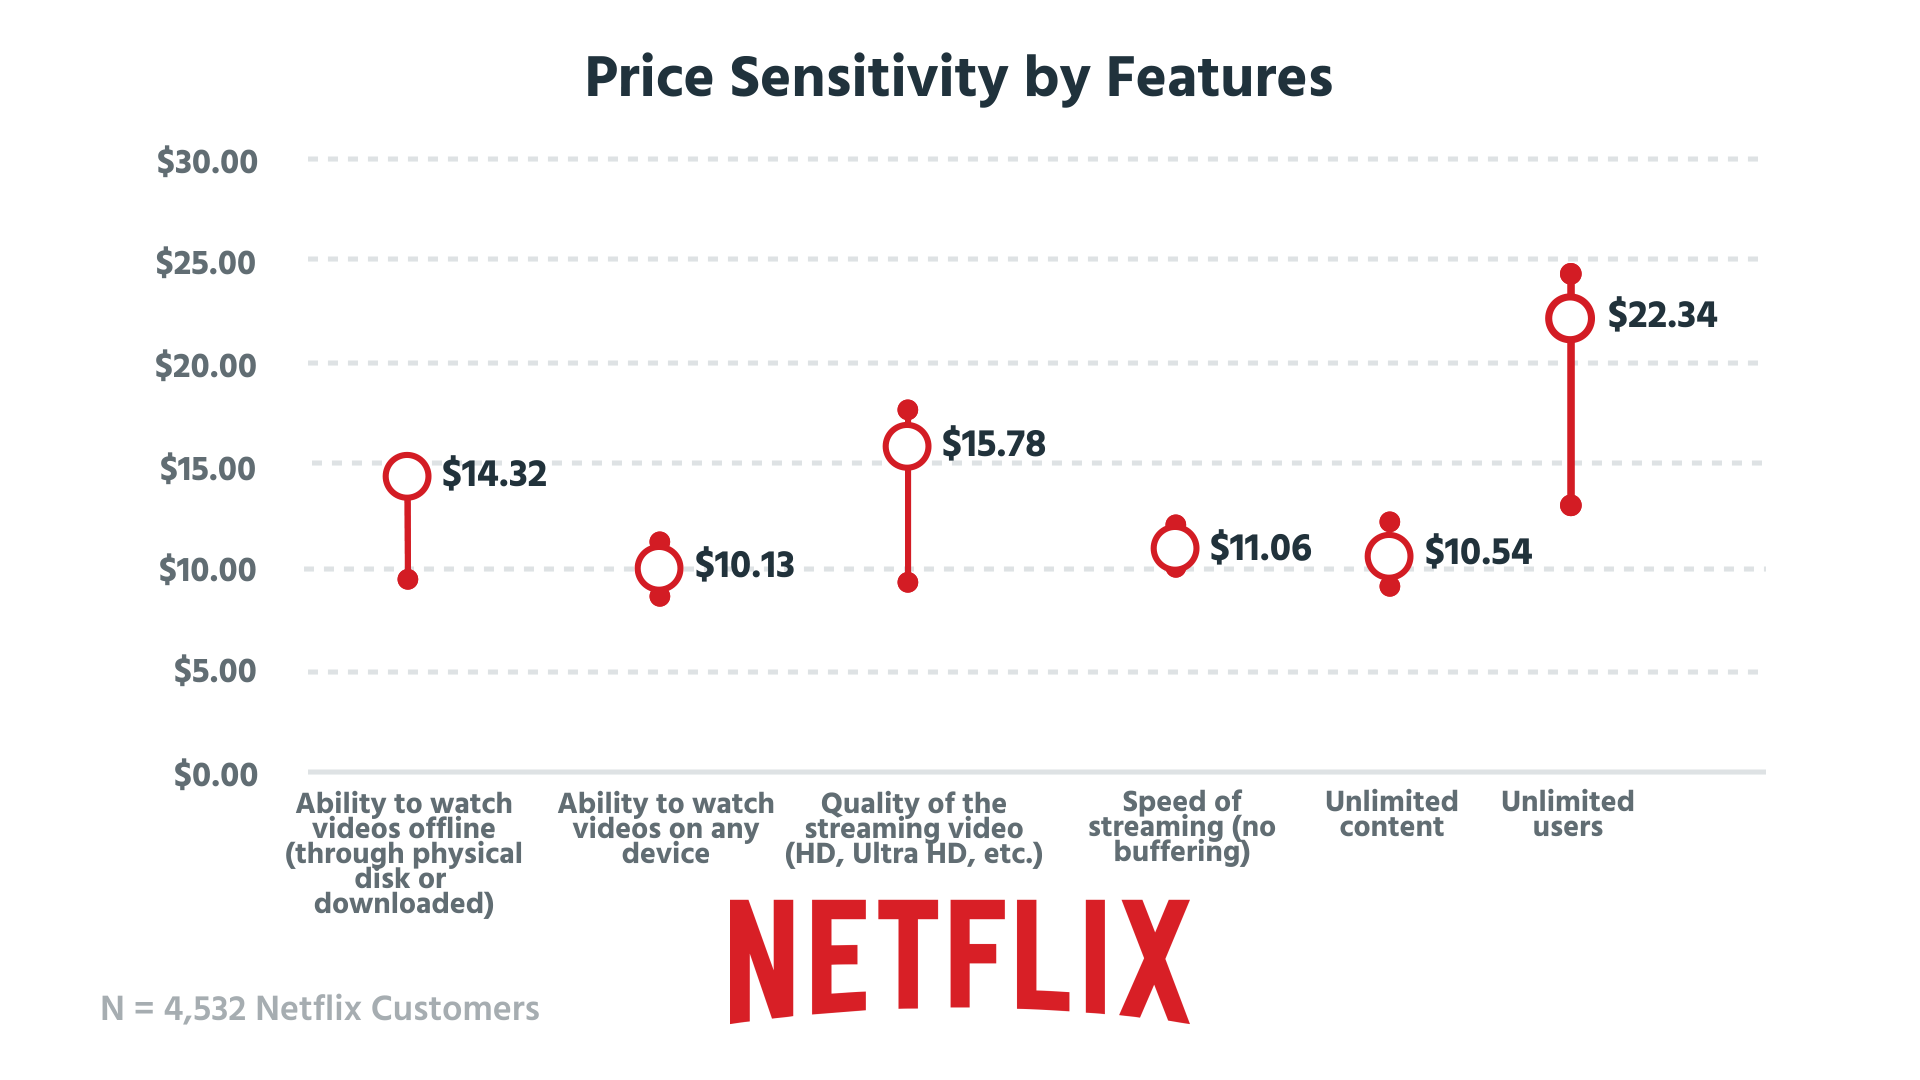 Netflix_PriceSens_Features .png